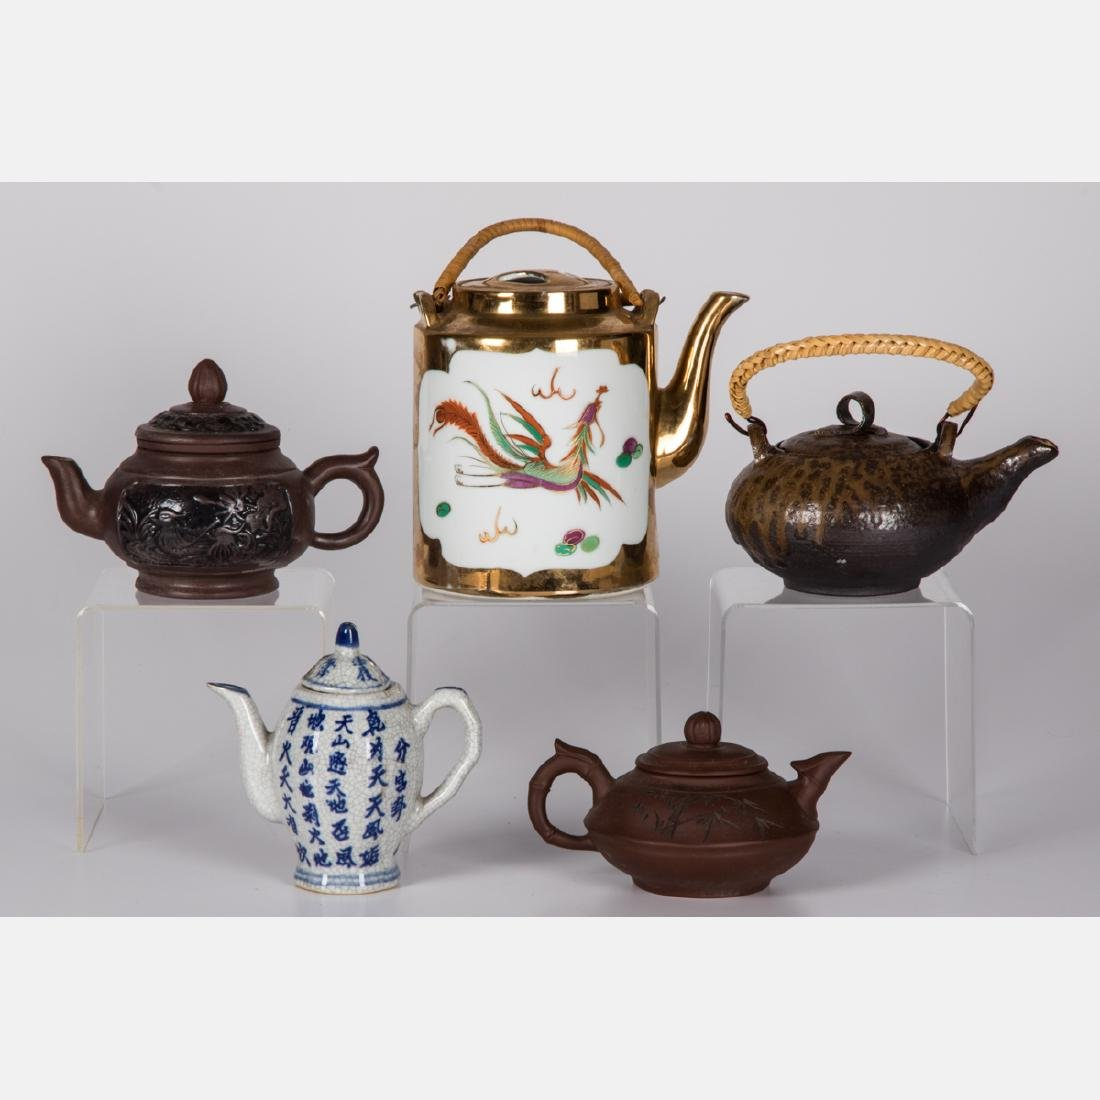 A Group of Five Asian Ceramic Teapots, 20th Century.